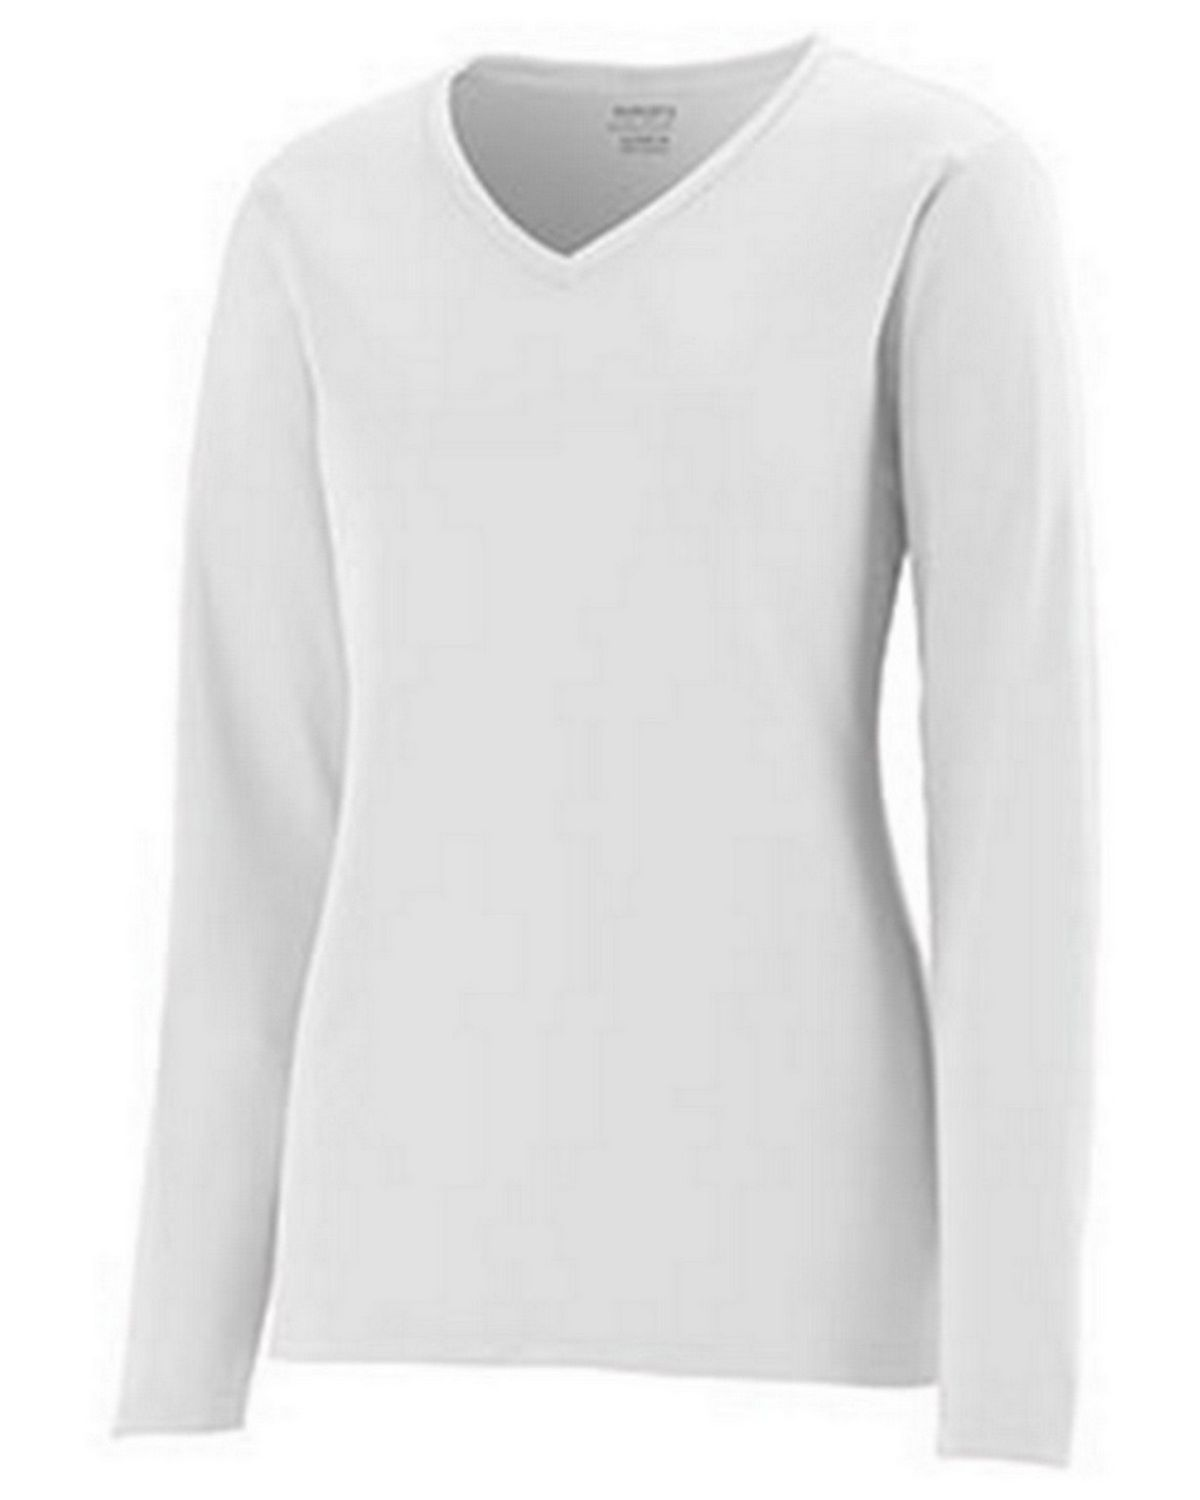 Augusta Sportswear 1788 Women's Wicking Polyester Long-Sleeve Jersey